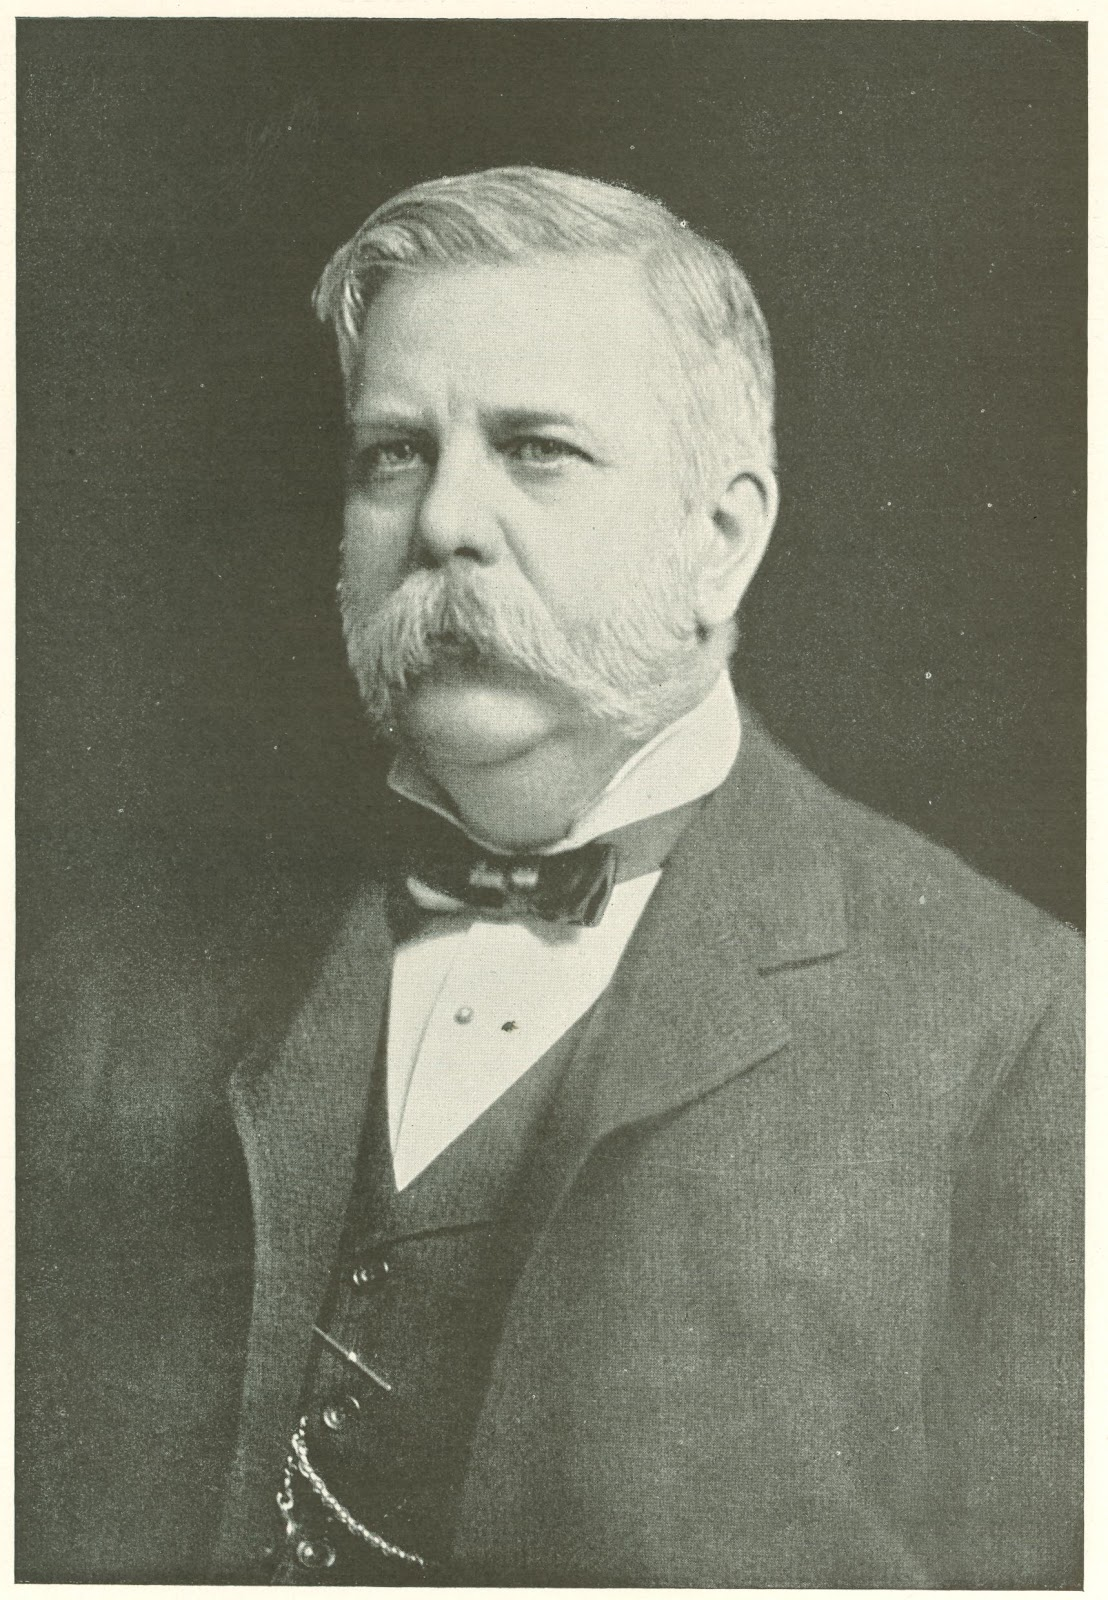 a biography of george westinghouse an american inventor George westinghouse - wikipedia george westinghouse jr (october 6, 1846 †march 12, 1914) was an american entrepreneur and engineer based in pittsburgh, pennsylvania who invented the railway air brake and was a pioneer of the electrical industry, gaining his first patent at the age of 19.